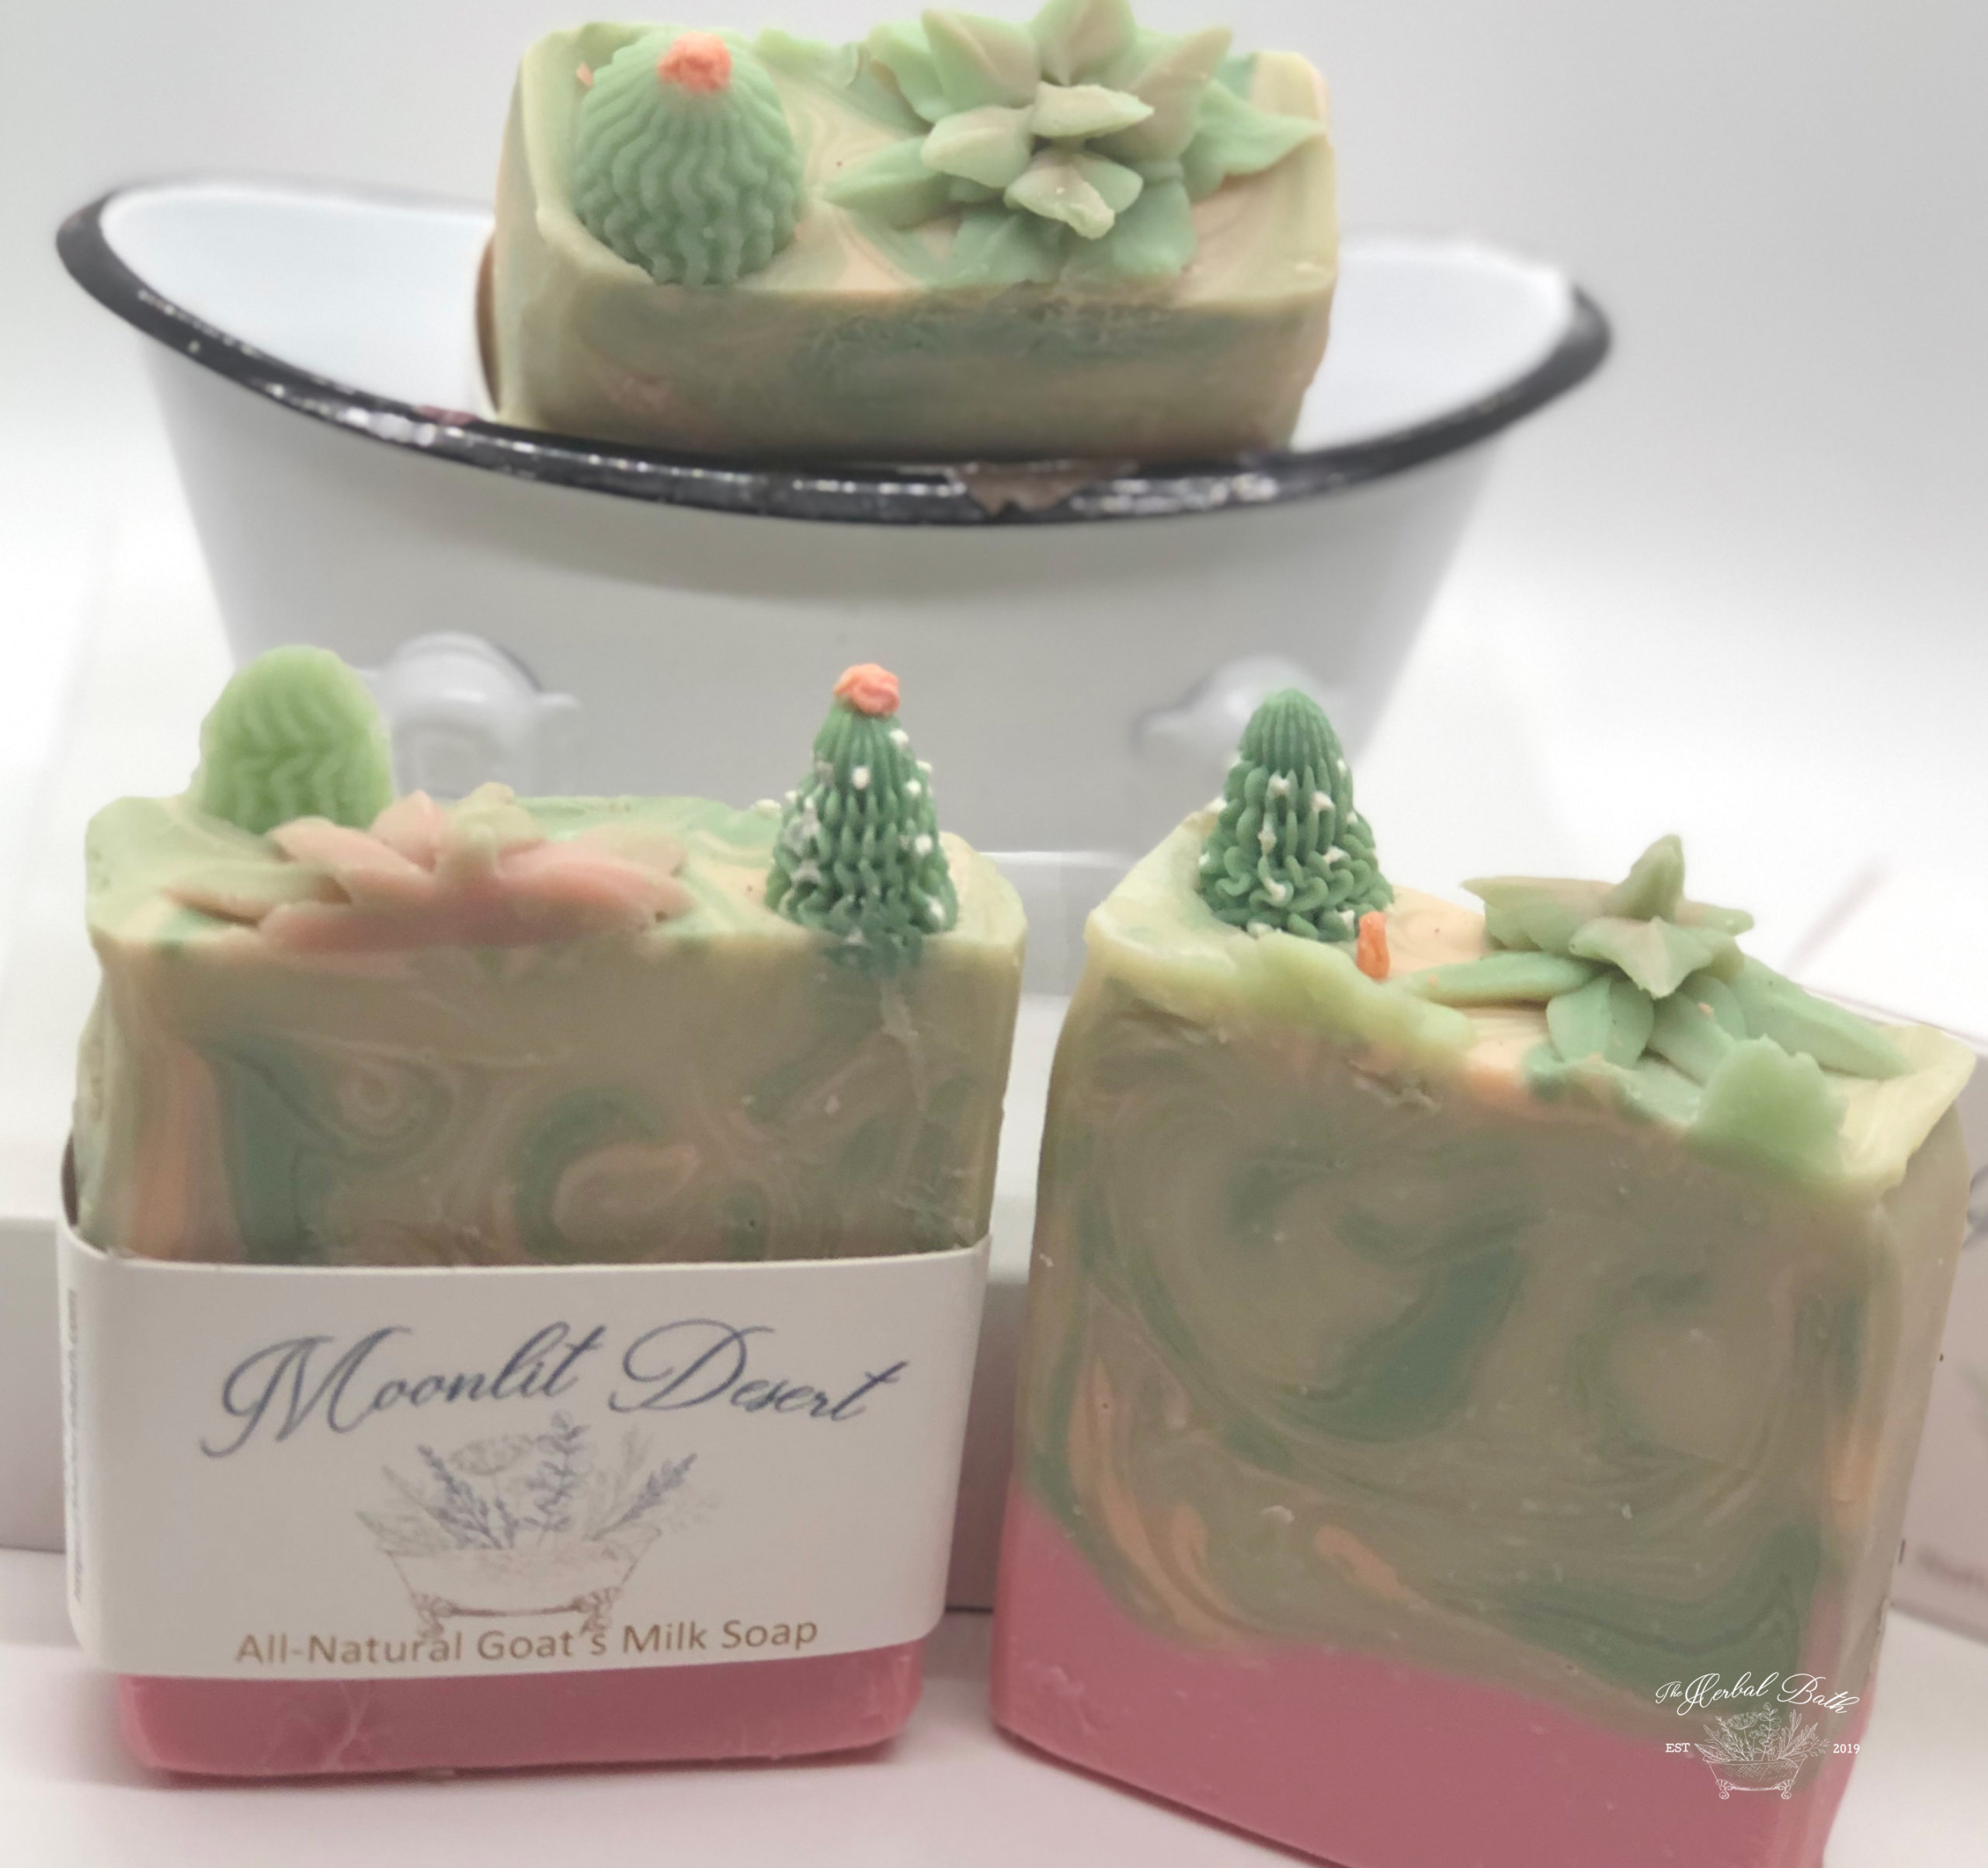 moonlit Desert Soap